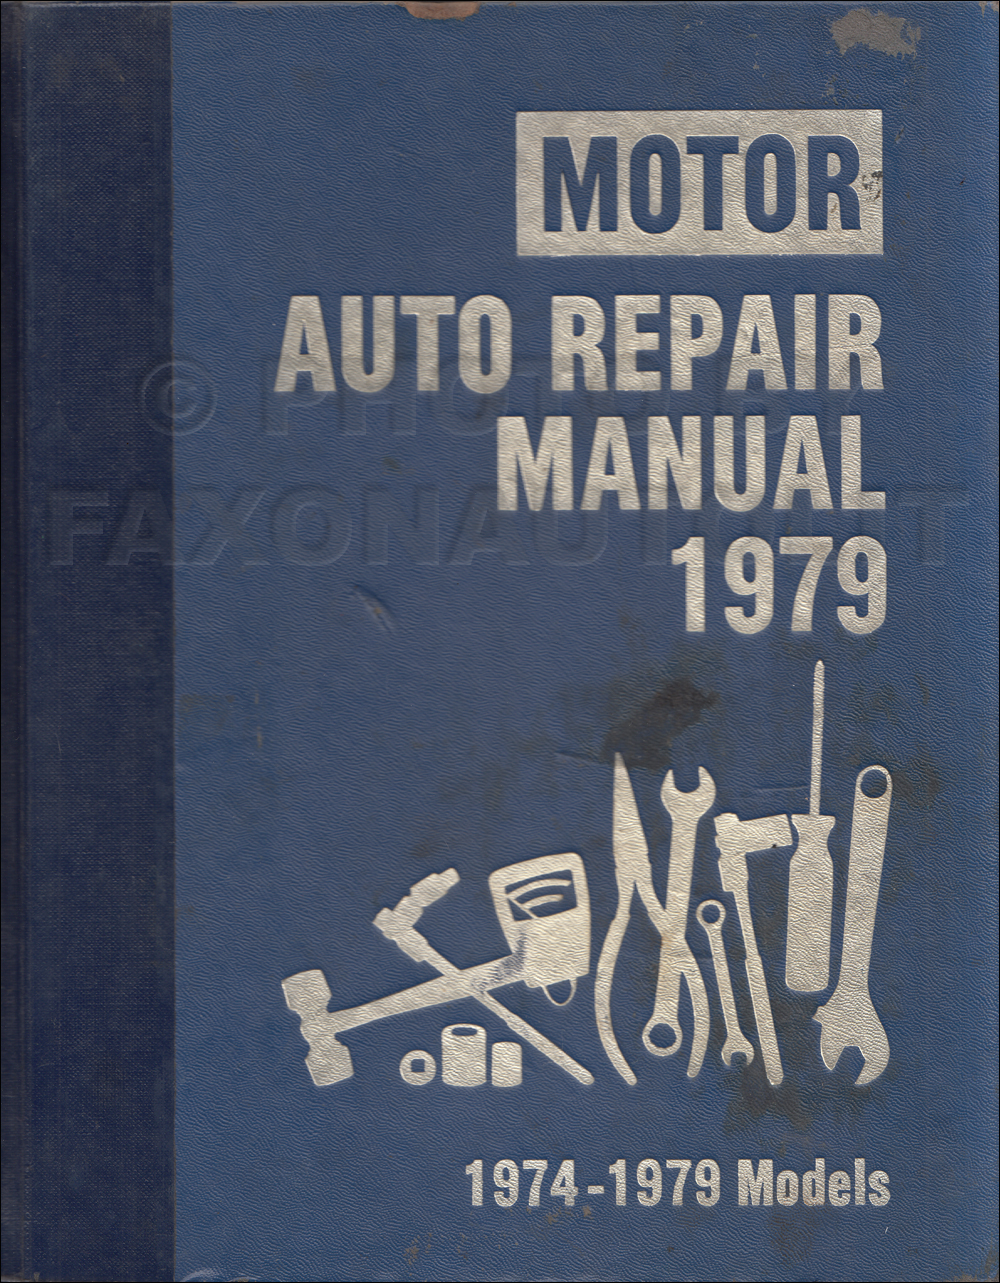 1974-1979 Motors Shop Manual US Cars 42nd Edition